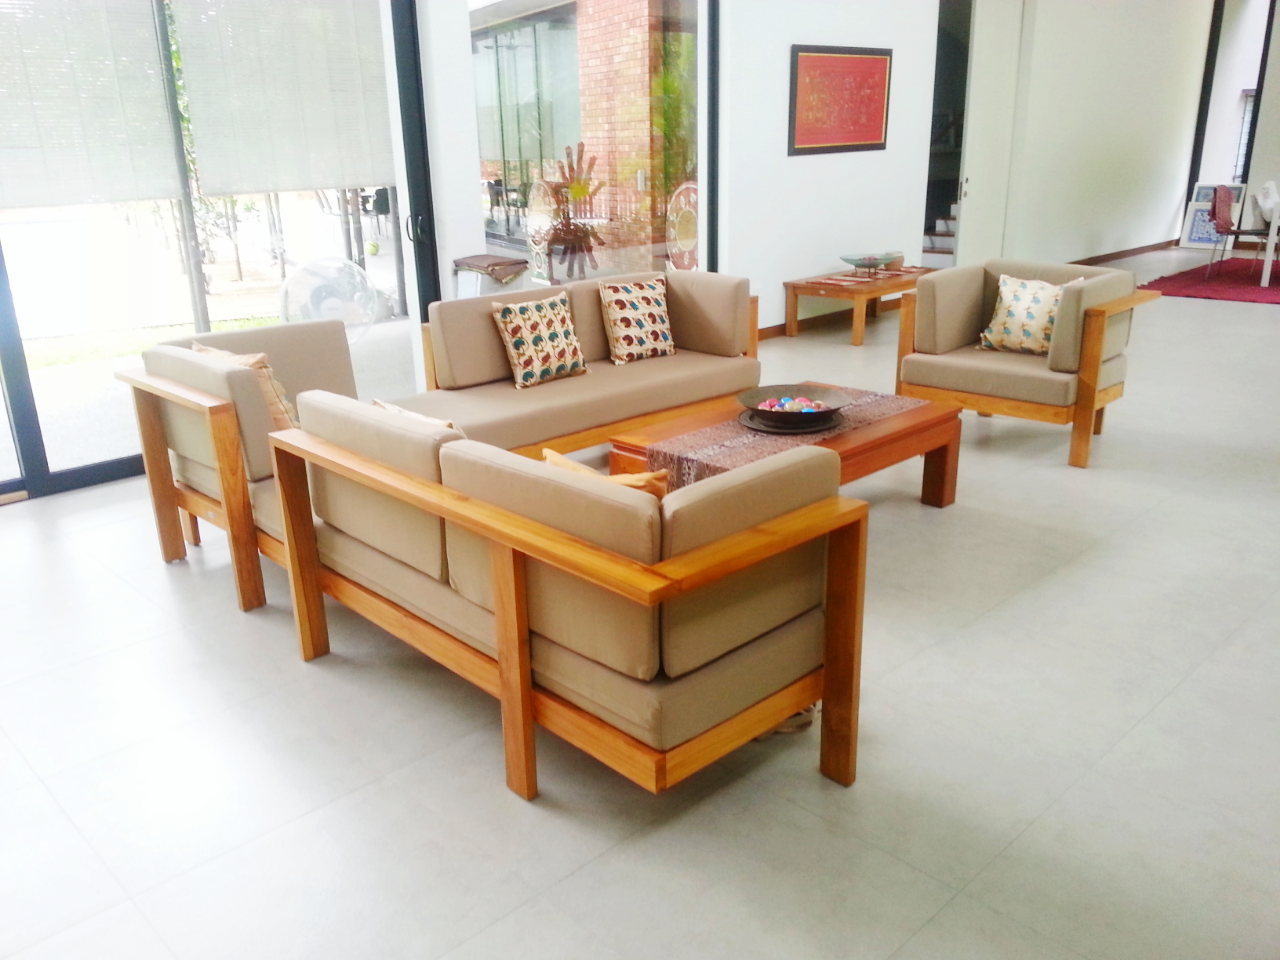 Teak Furniture Malaysia Teak Wood Furniture Shop Selangor Malaysia Furniture Wood Sofa Teak Wood Furniture